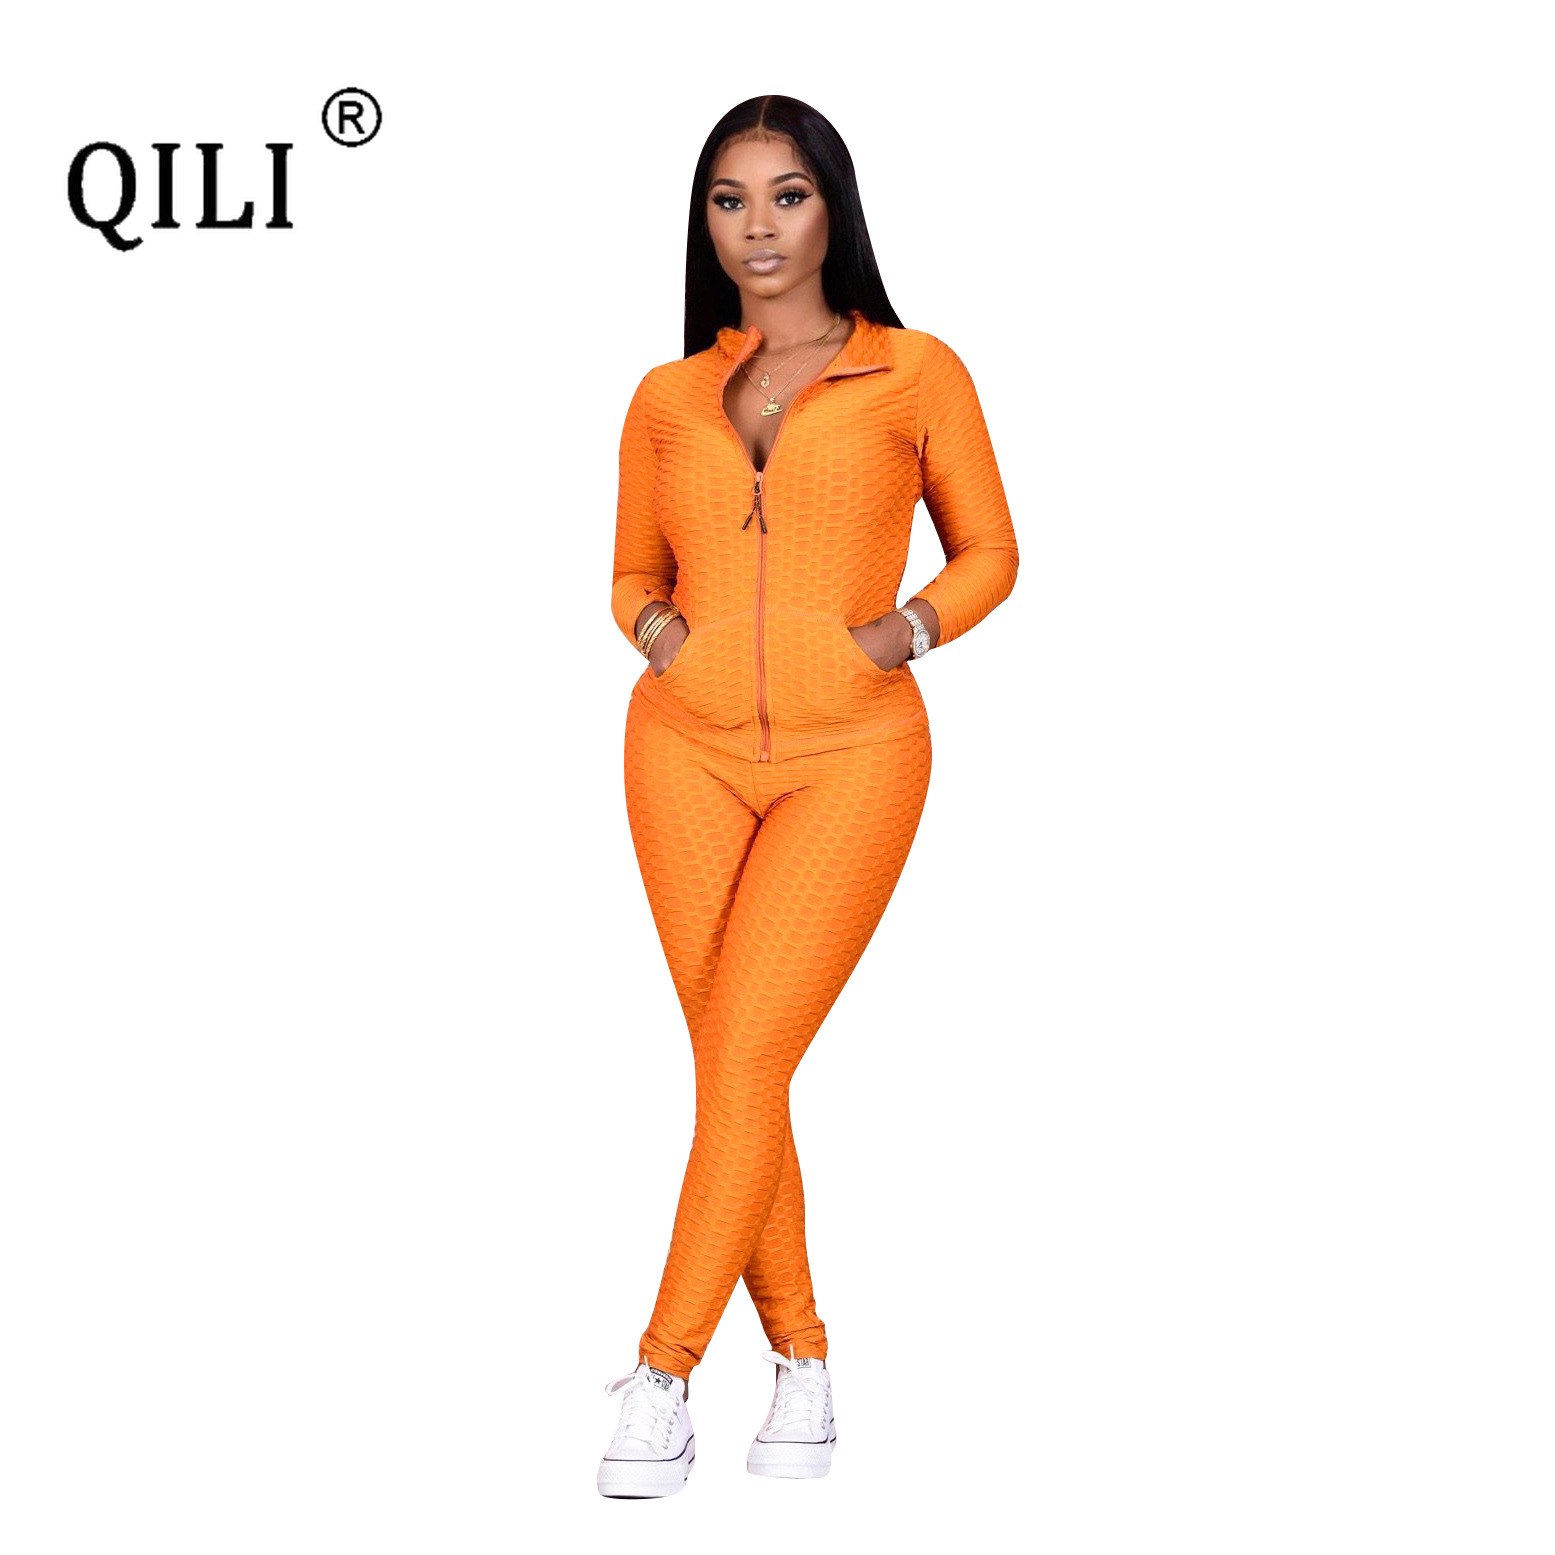 QILI 2020 Autumn Winter Women Outfits Zipper Top + Pants Sets Office Lady Plaid Jacquard Long Sleeve Two Piece Casual Outfits